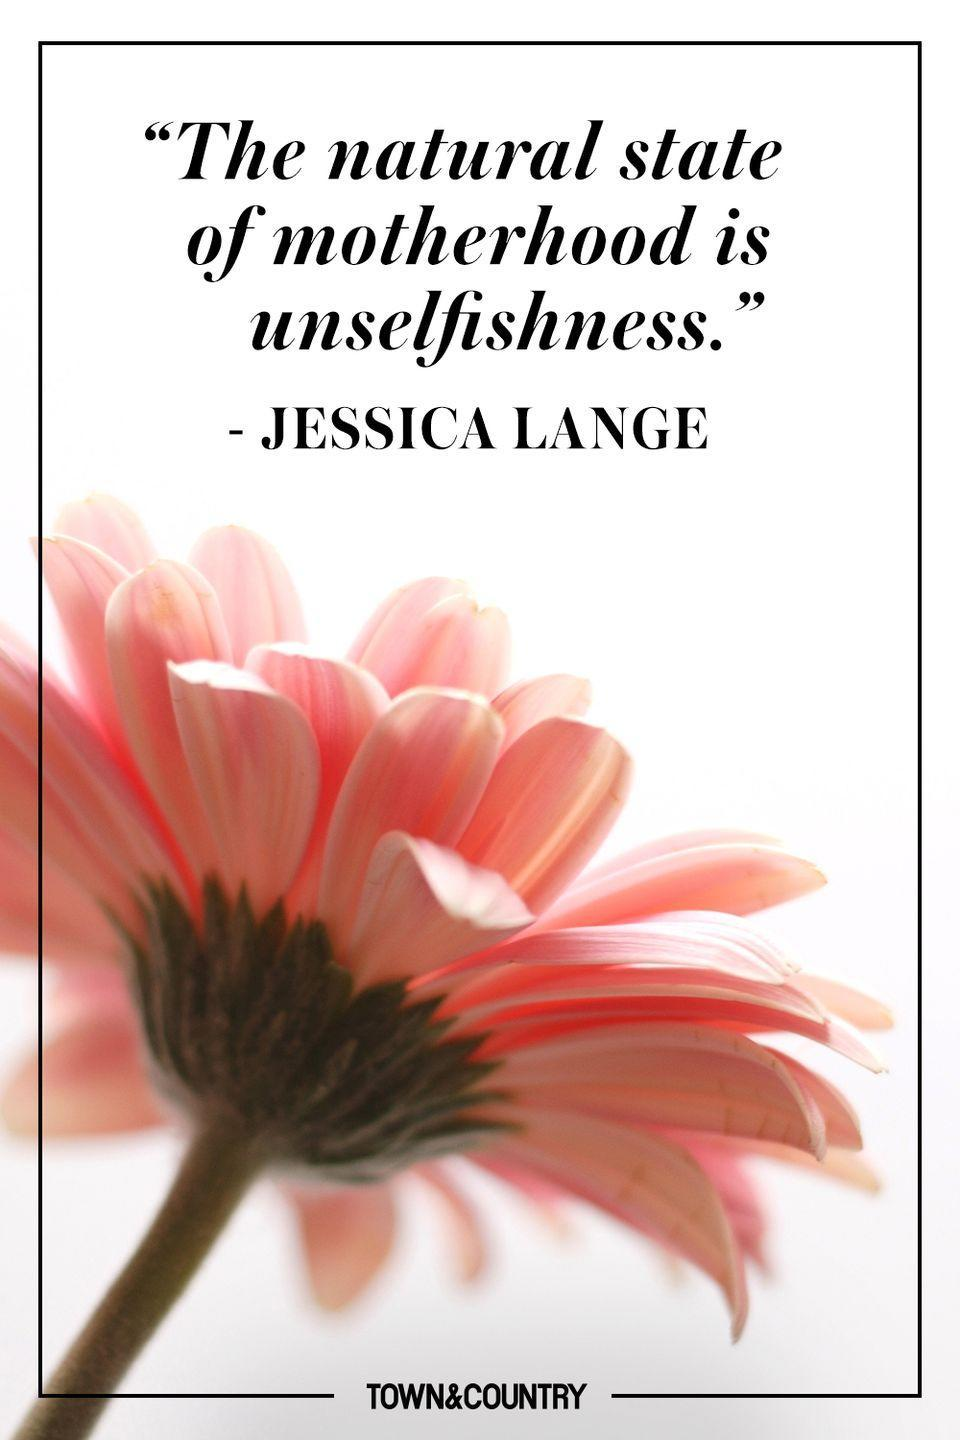 """<p>""""The natural state of motherhood is unselfishness.""""</p><p>- Jessica Lange</p>"""